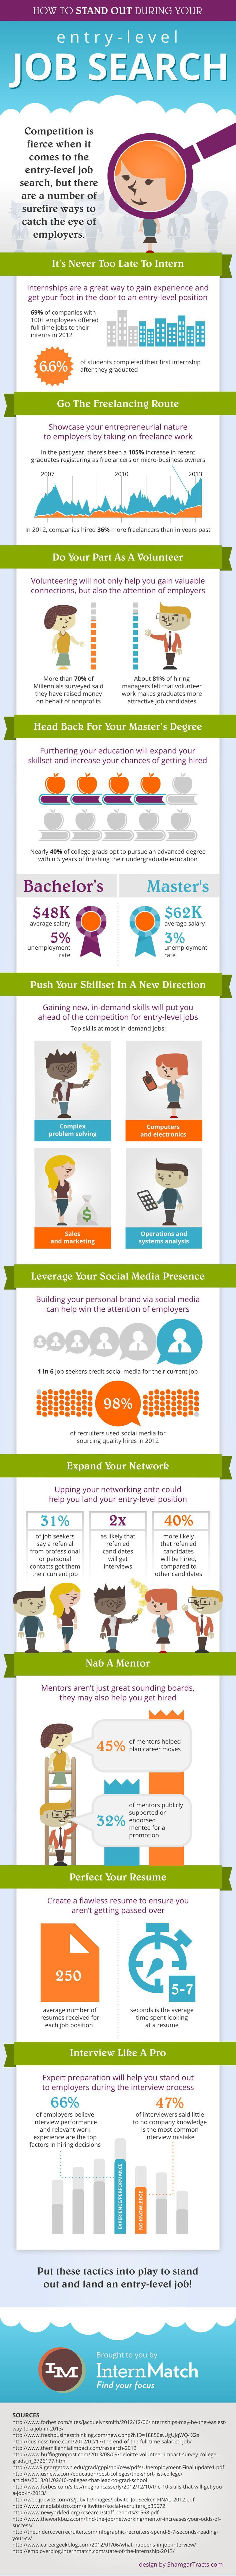 How-To-Stand-Out-During-Your-Entry-Level-Job-Search #Infographic